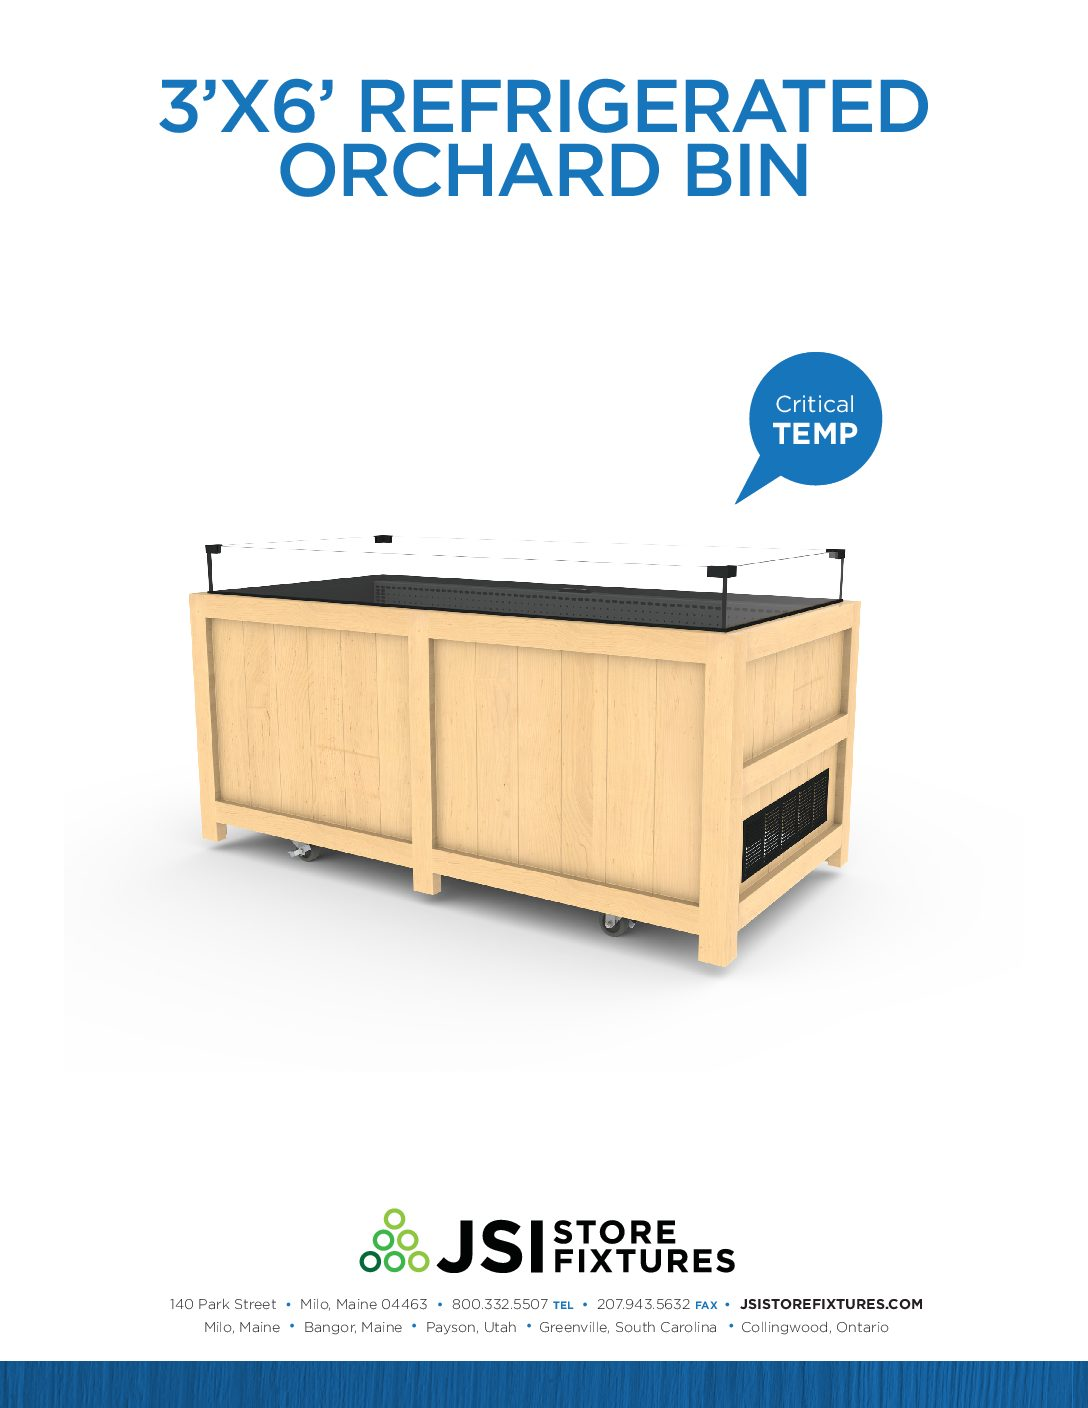 3'x6' Refrigerated Orchard Bin Spec Sheet